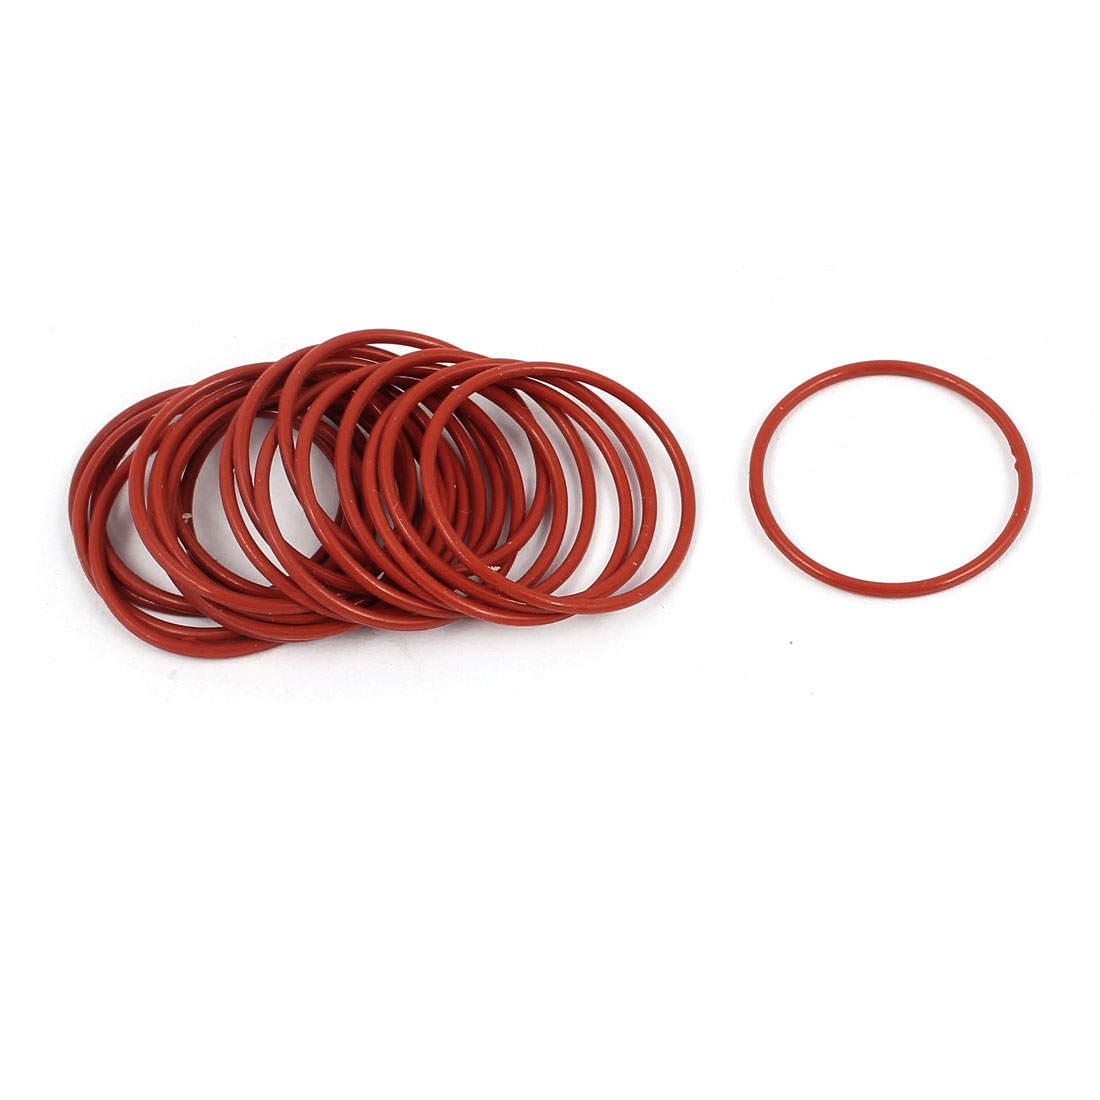 20Pcs 20mm x 1mm Rubber O-rings NBR Heat Resistant Sealing Ring Grommets Red